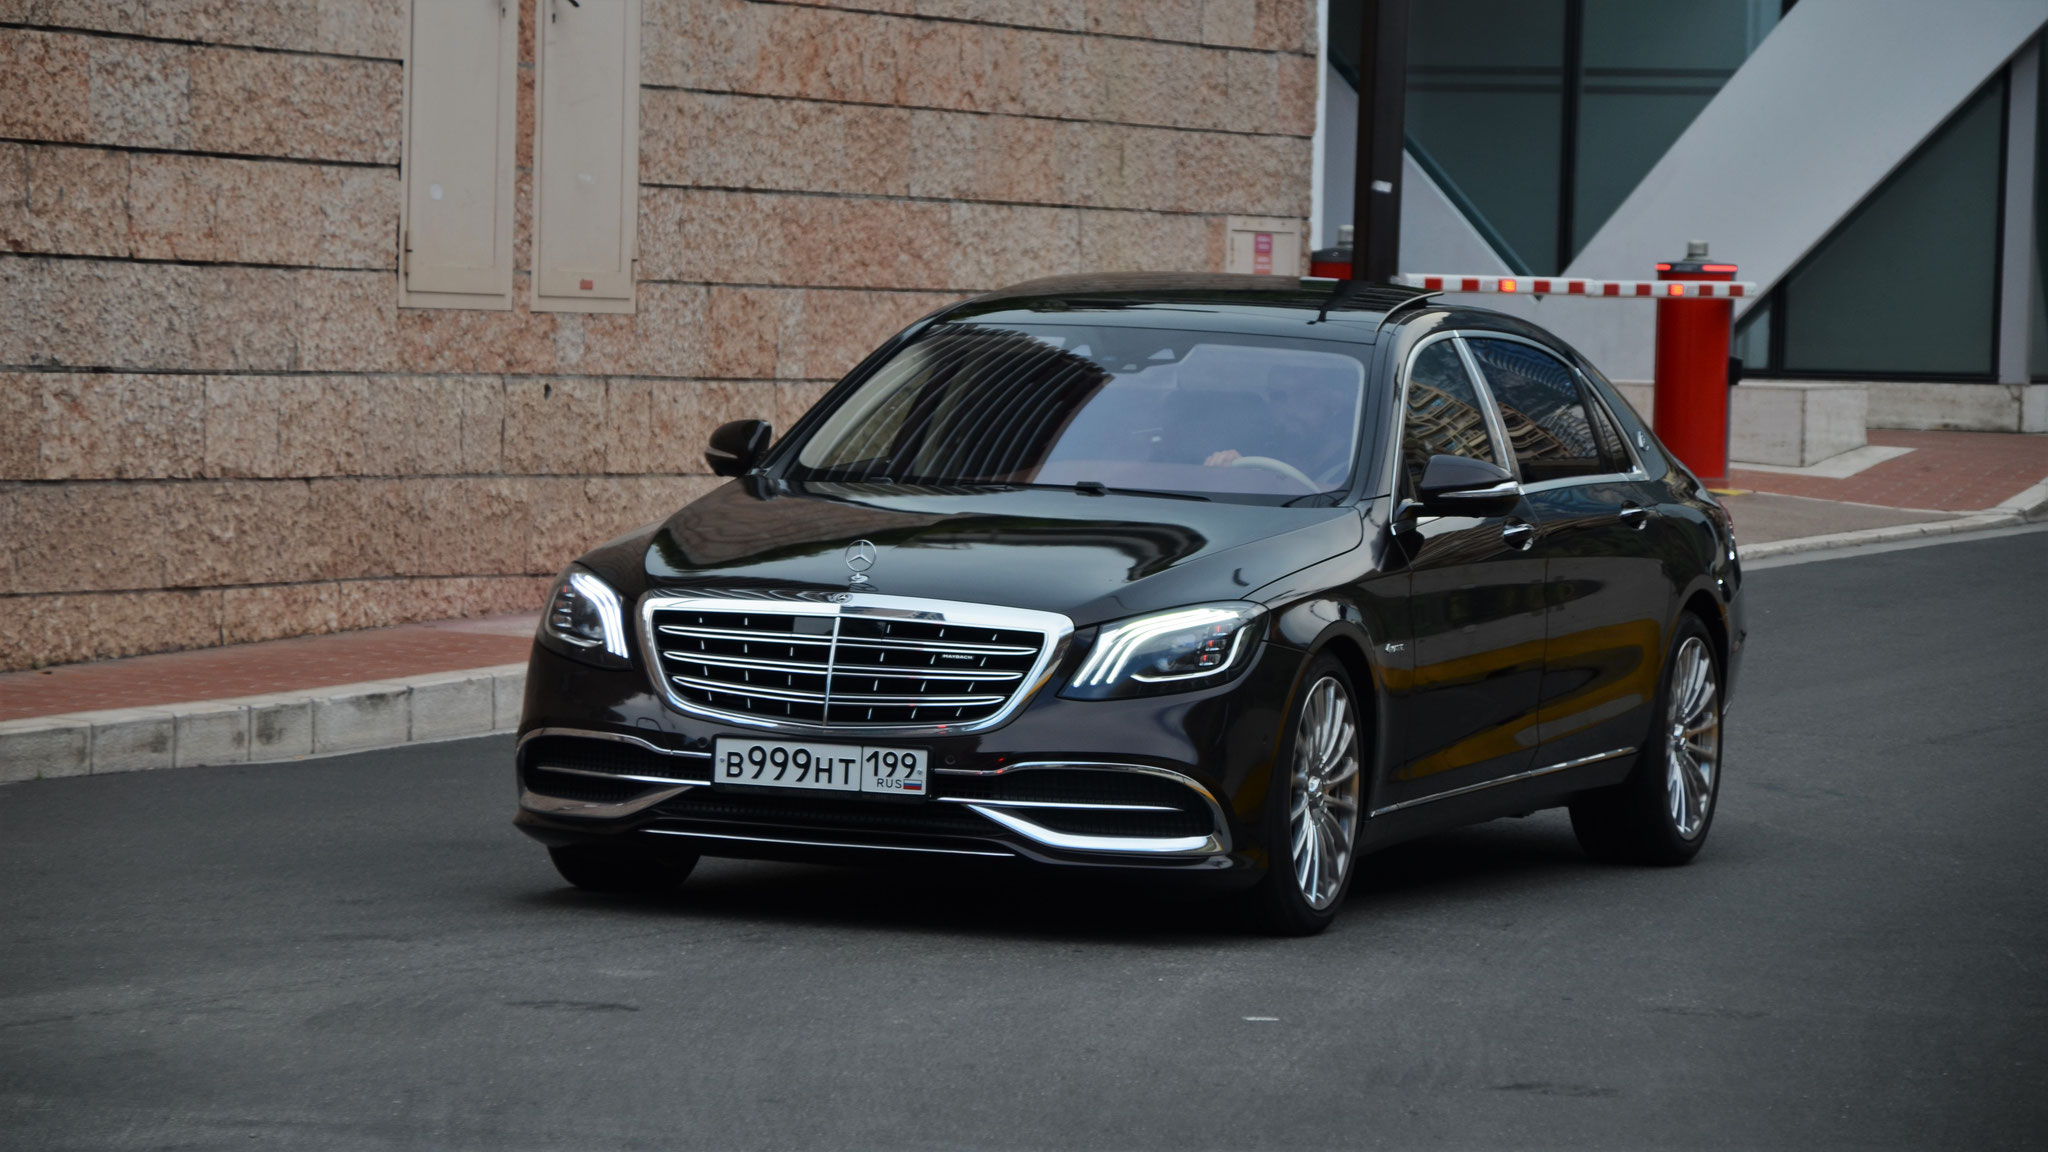 Mercedes Maybach S500 - B-999-HT-199 (RUS)